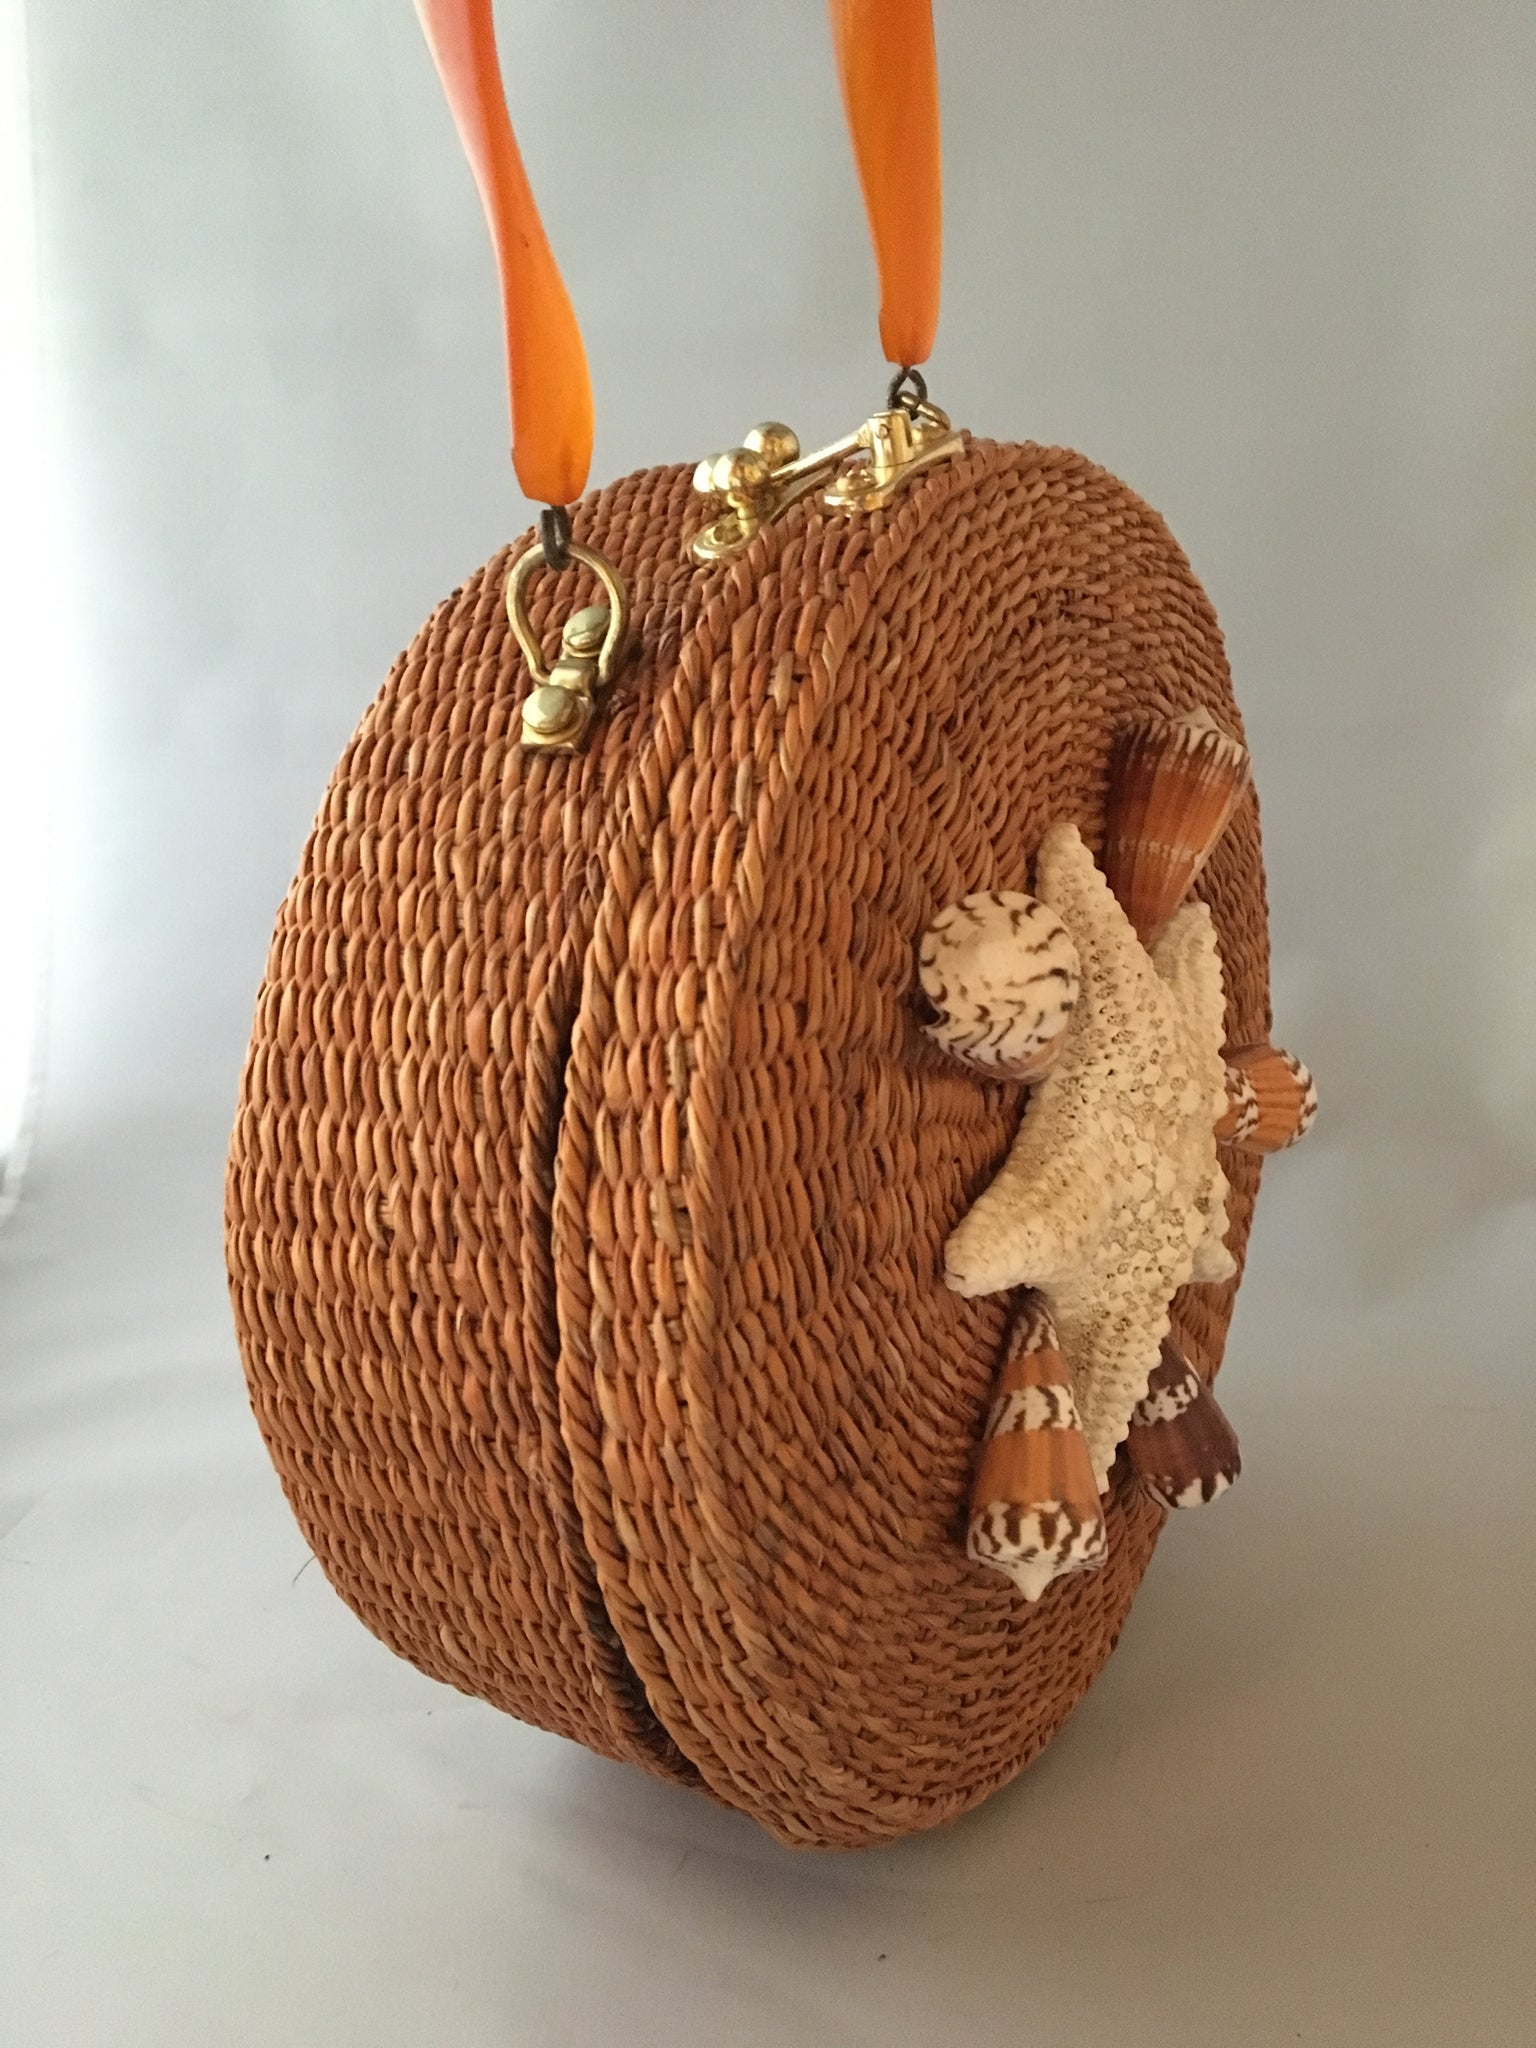 "A great horned starfish and other wanna-bees encircle this unusual vintage straw bag. Leather lined with vintage lucite handle.You'll be in the inner circle wherever you take this!  Dimensions - Diameter 10""; Depth 4""; Handle 4"""